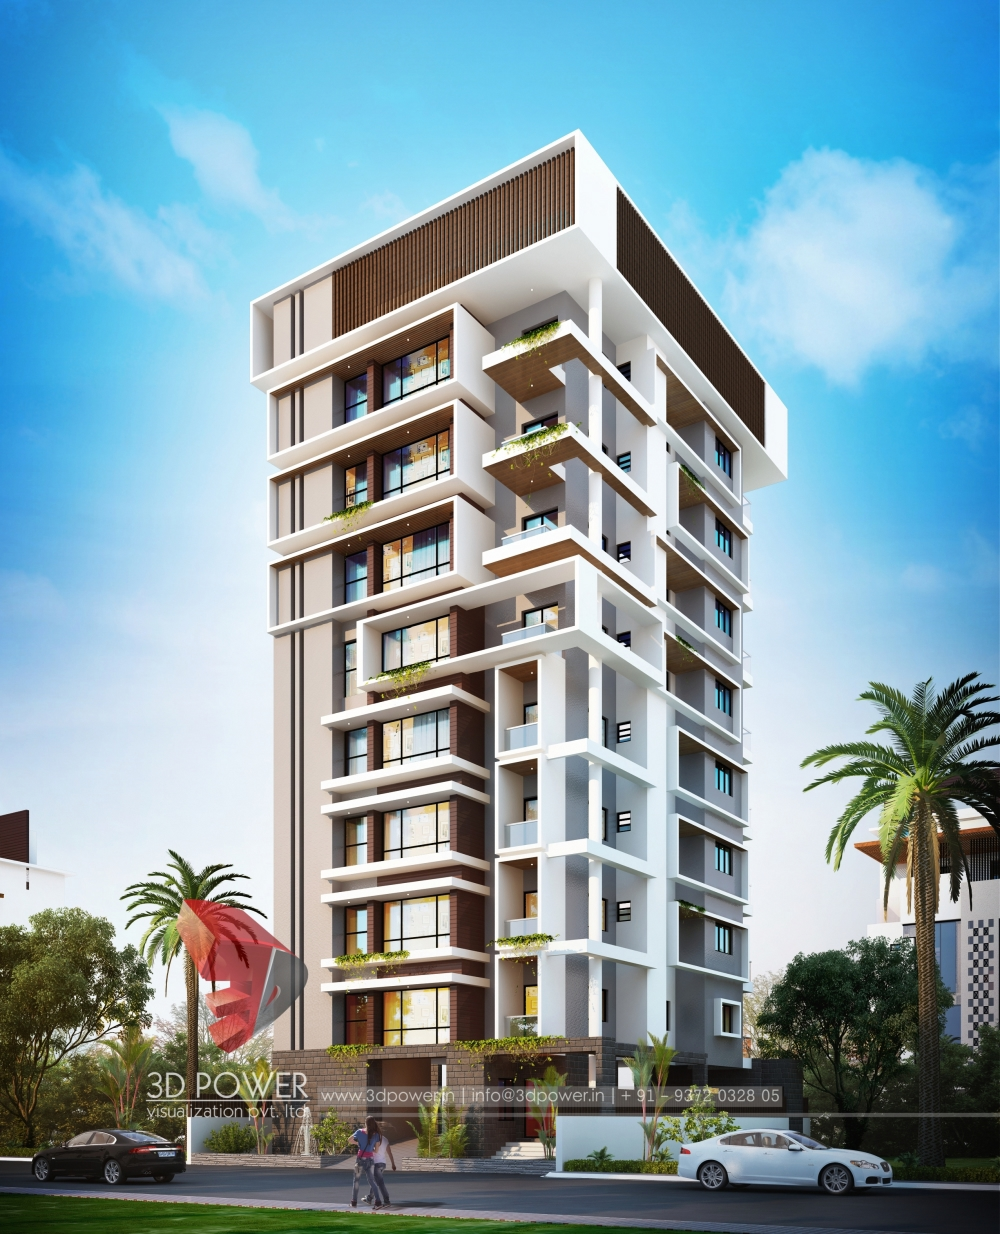 Apartement: Apartment Visualization Hyderabad